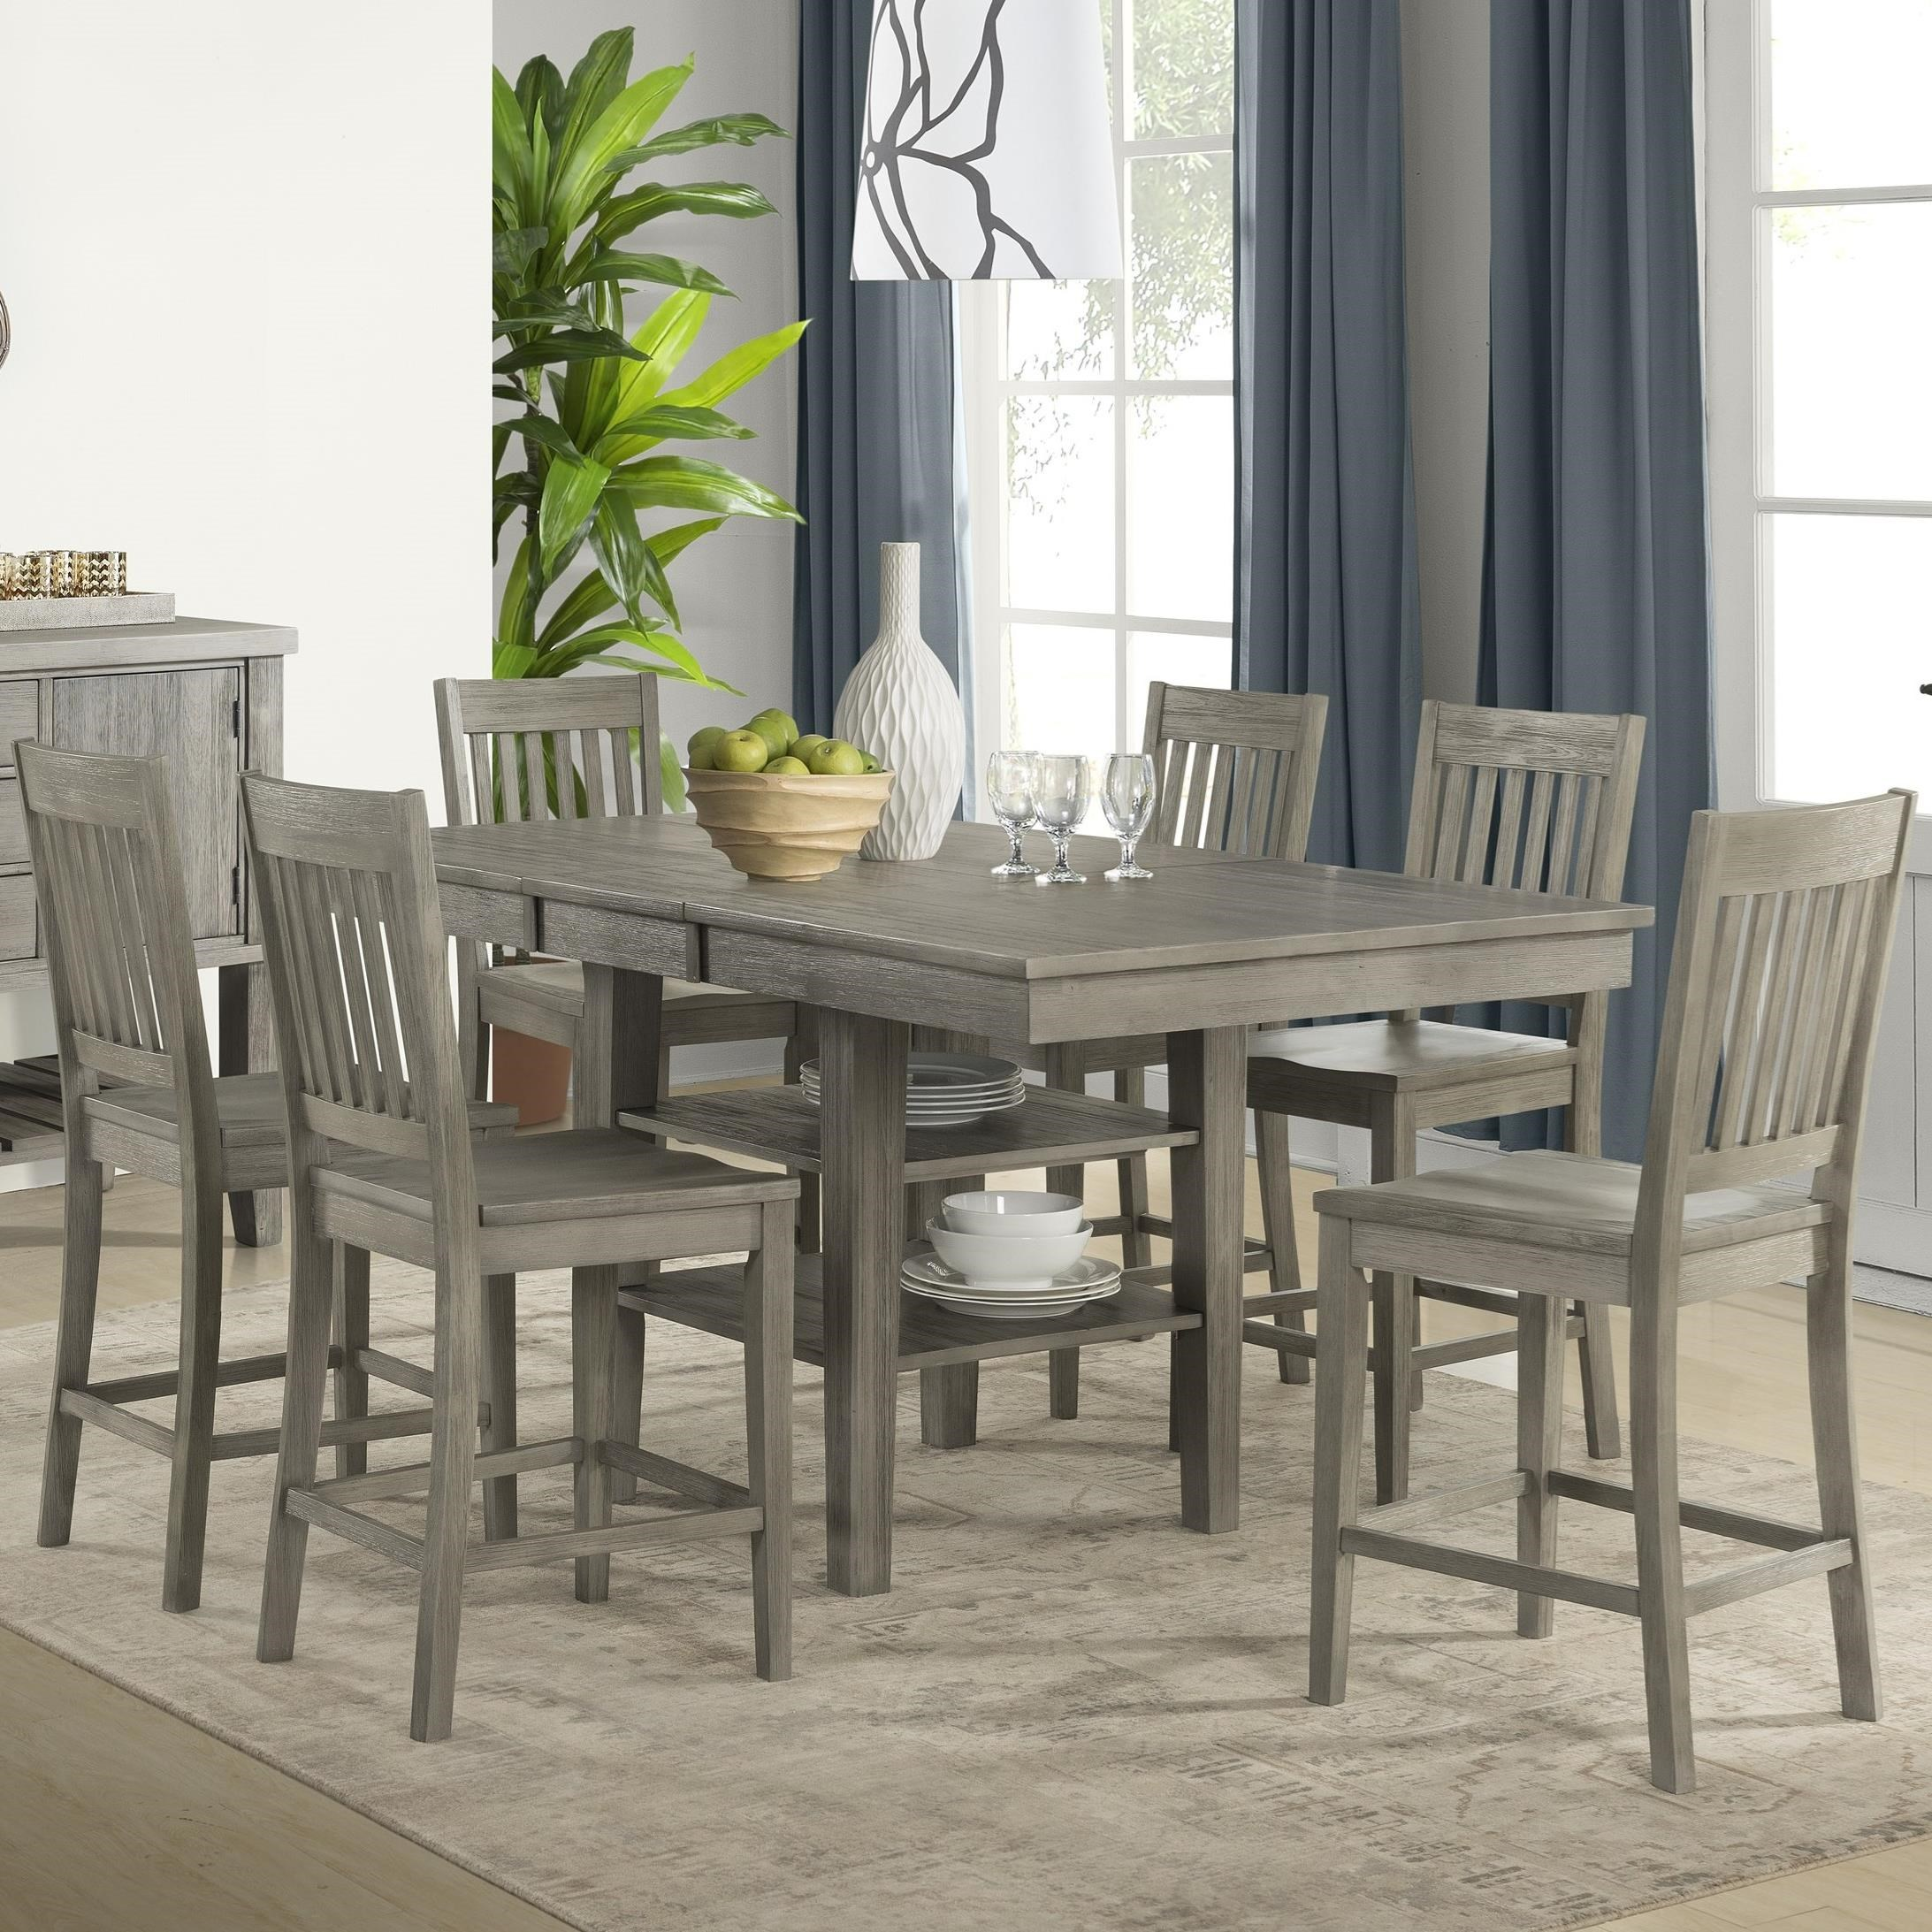 Huron Transitional Pub Table and Chair Set by A-A at Walker's Furniture